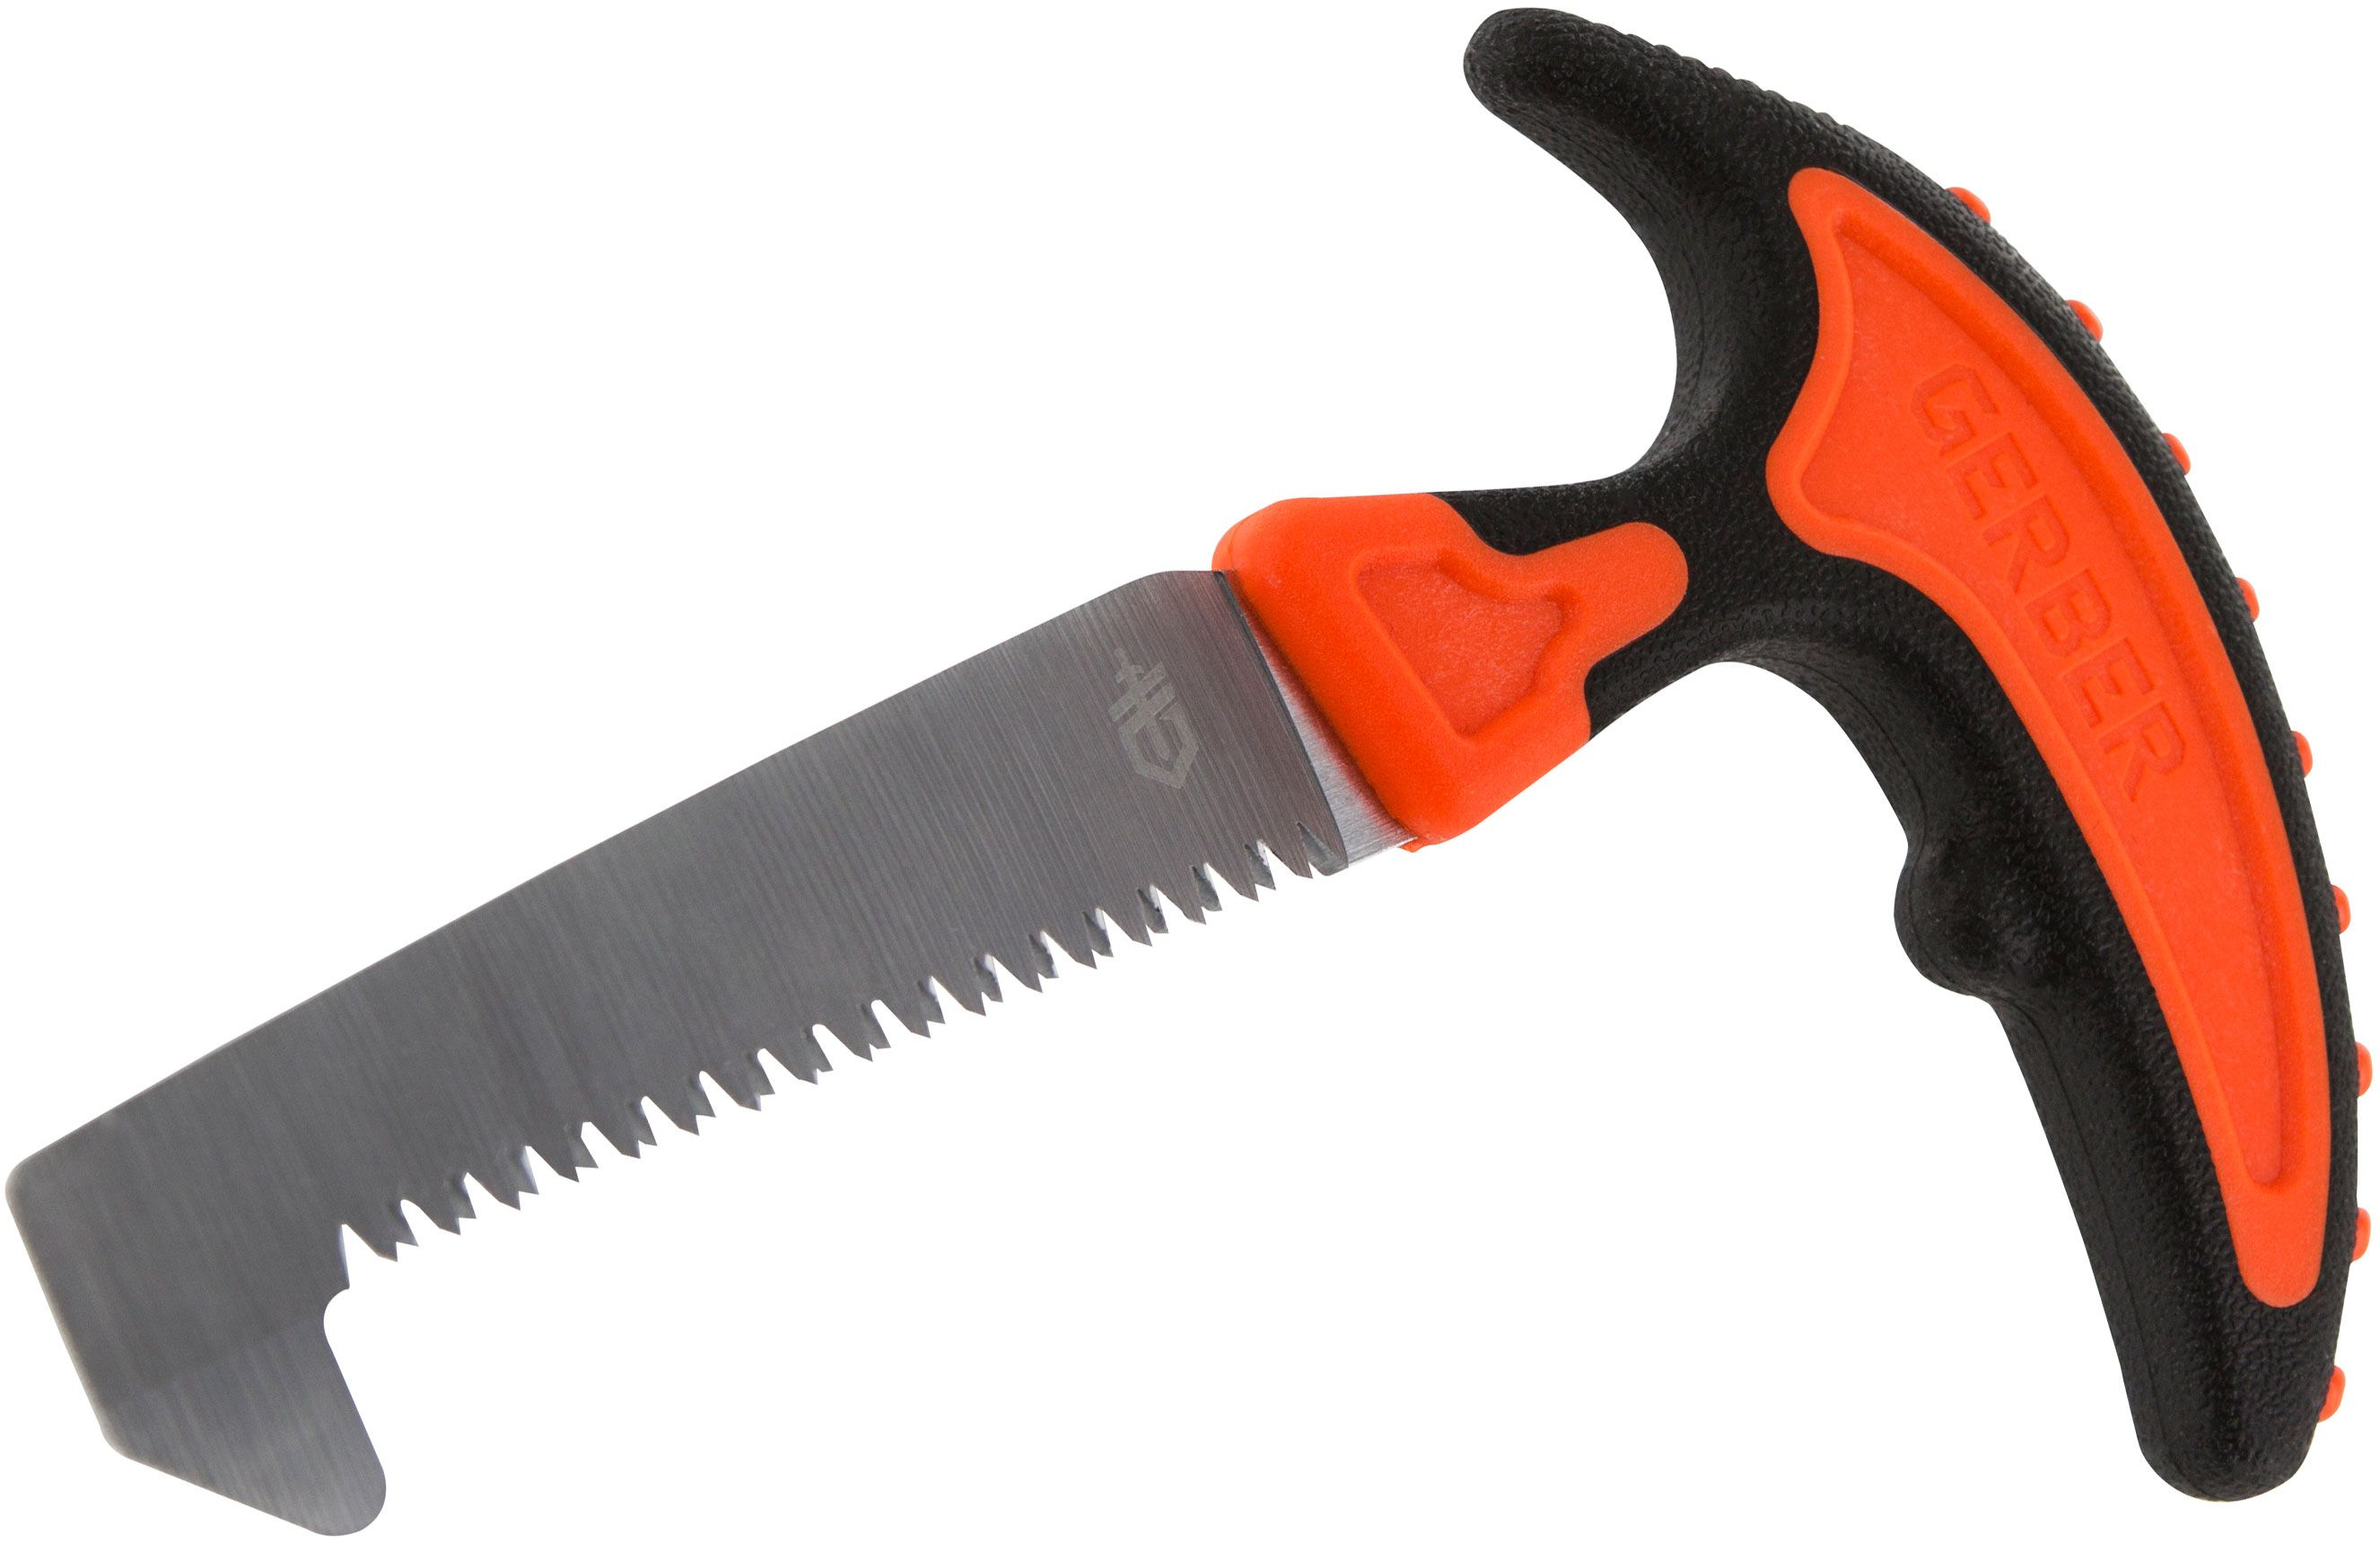 Gerber Vital Pack Saw 3.6 inch SK5 Carbon Blade, Orange Rubberized Handle